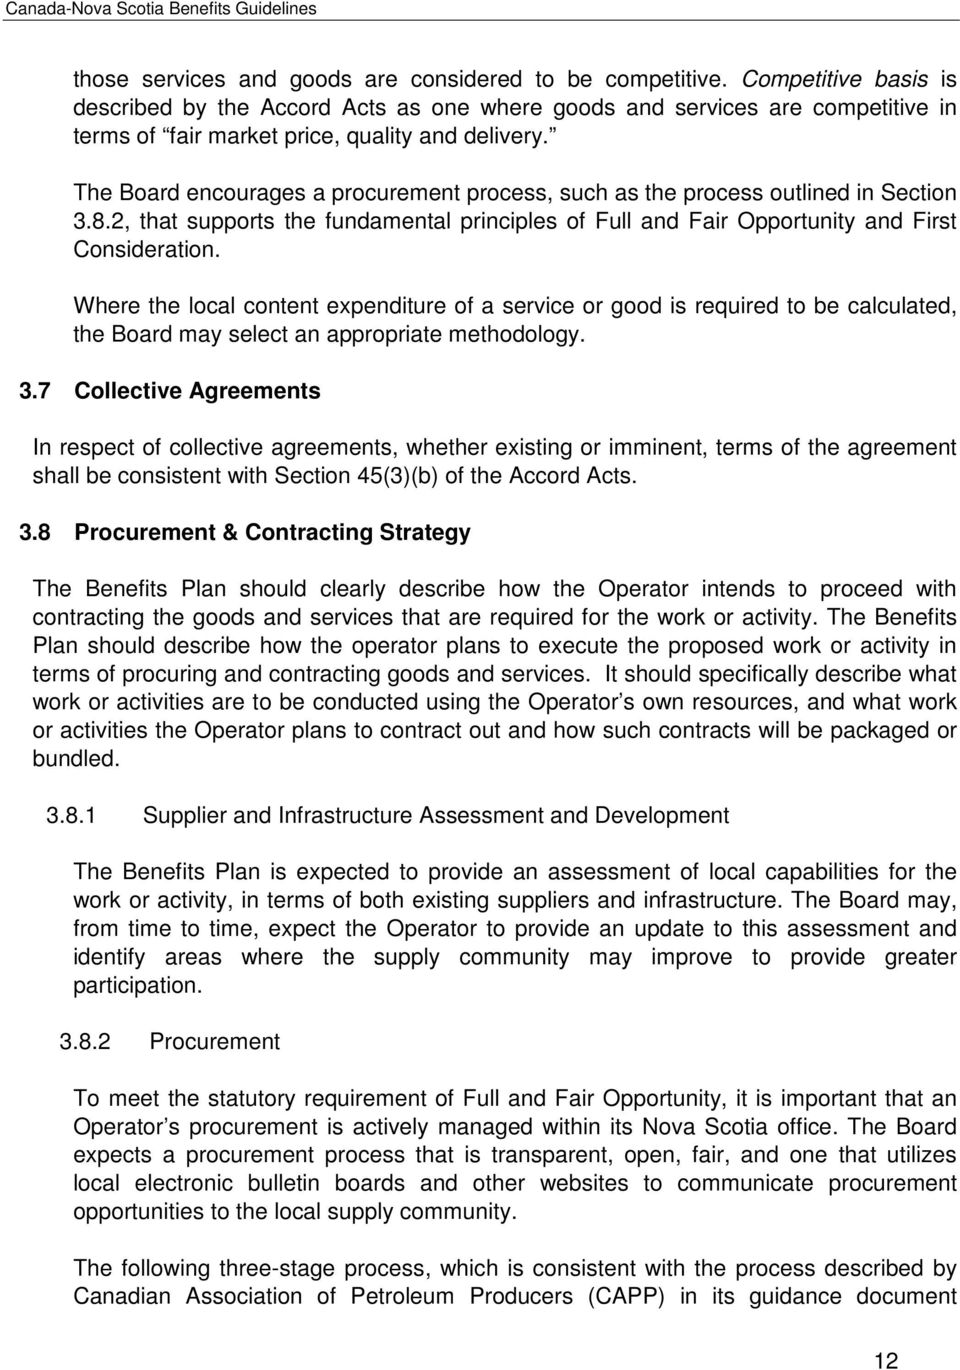 The Board encourages a procurement process, such as the process outlined in Section 3.8.2, that supports the fundamental principles of Full and Fair Opportunity and First Consideration.